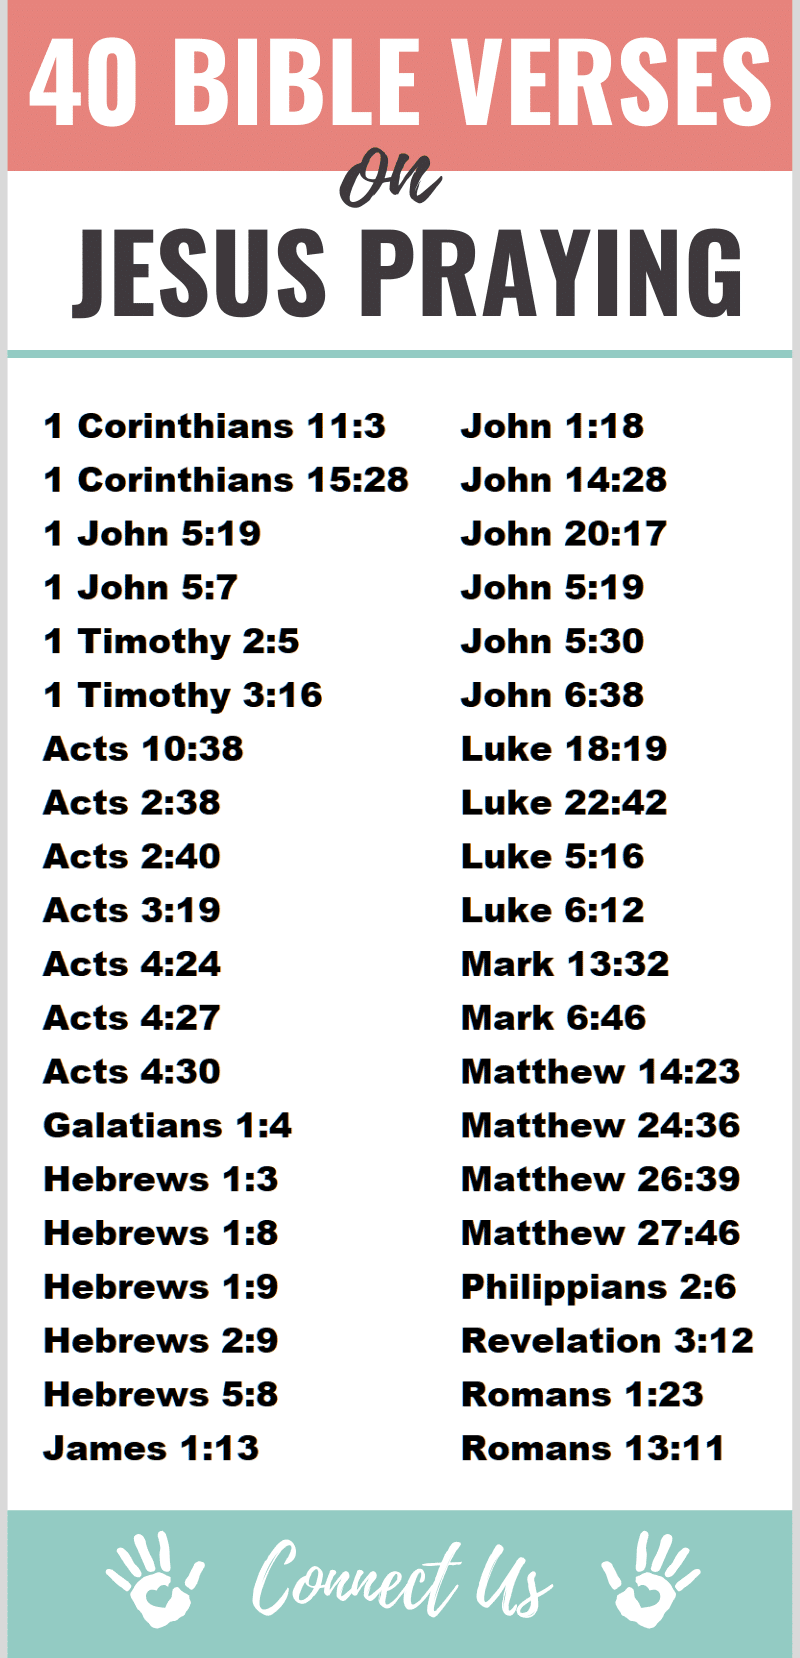 Bible Verses on Jesus Praying